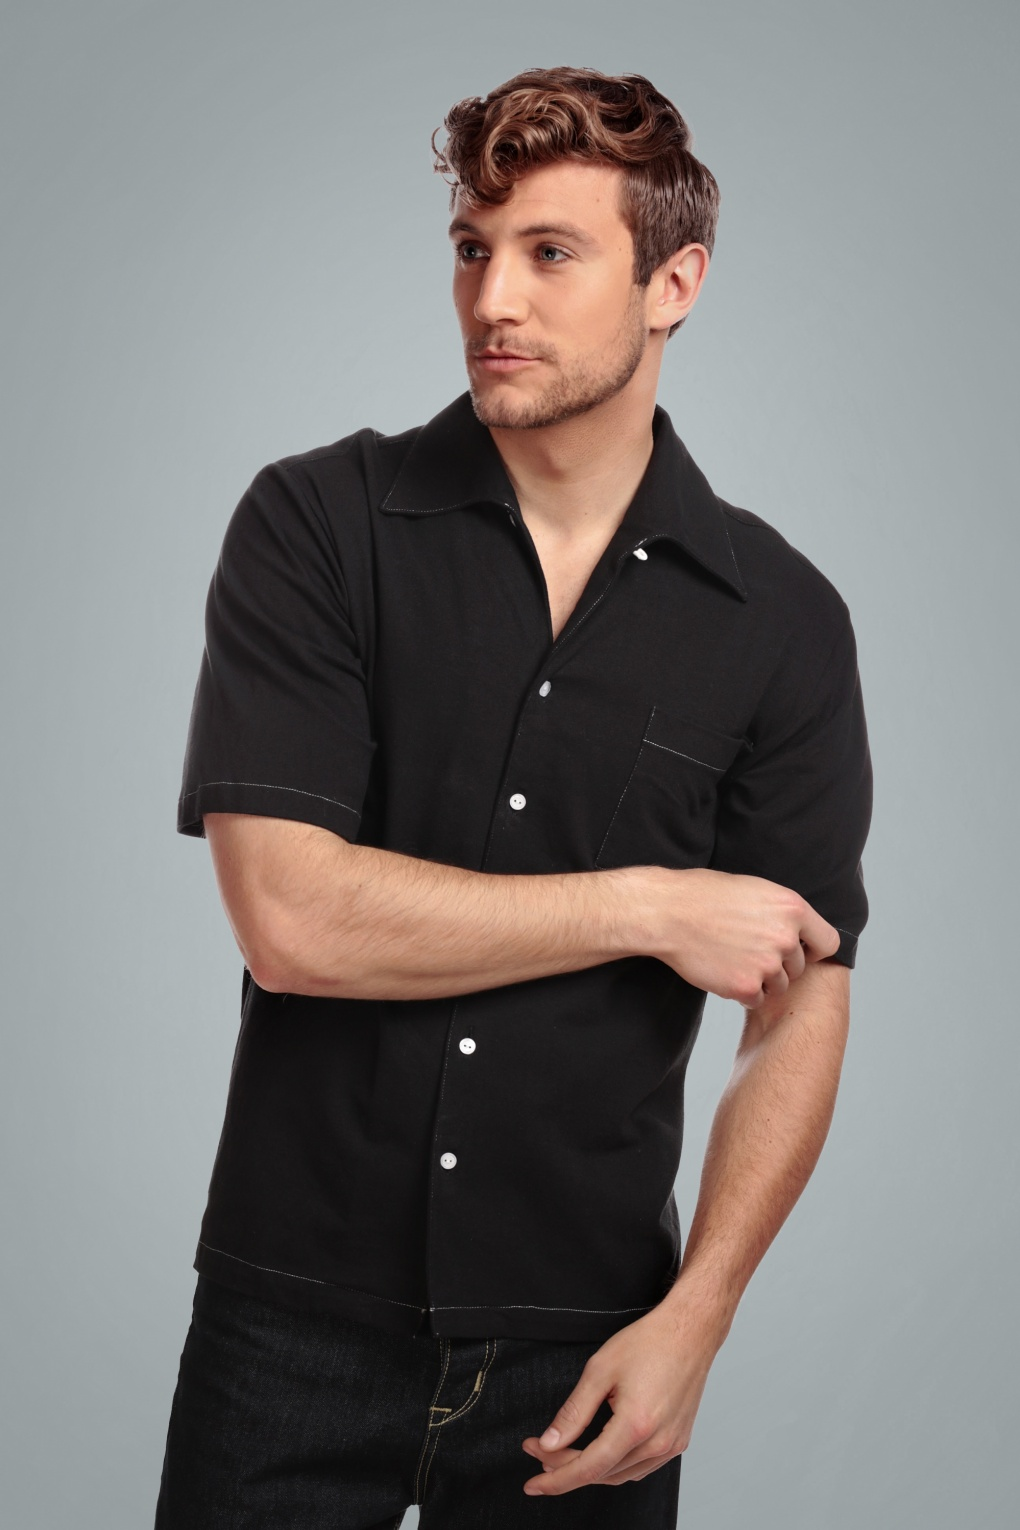 1960s Menswear Outfits | 60s Fashion for Guys 50s Harry Haven Short Sleeved Shirt in Black £36.14 AT vintagedancer.com